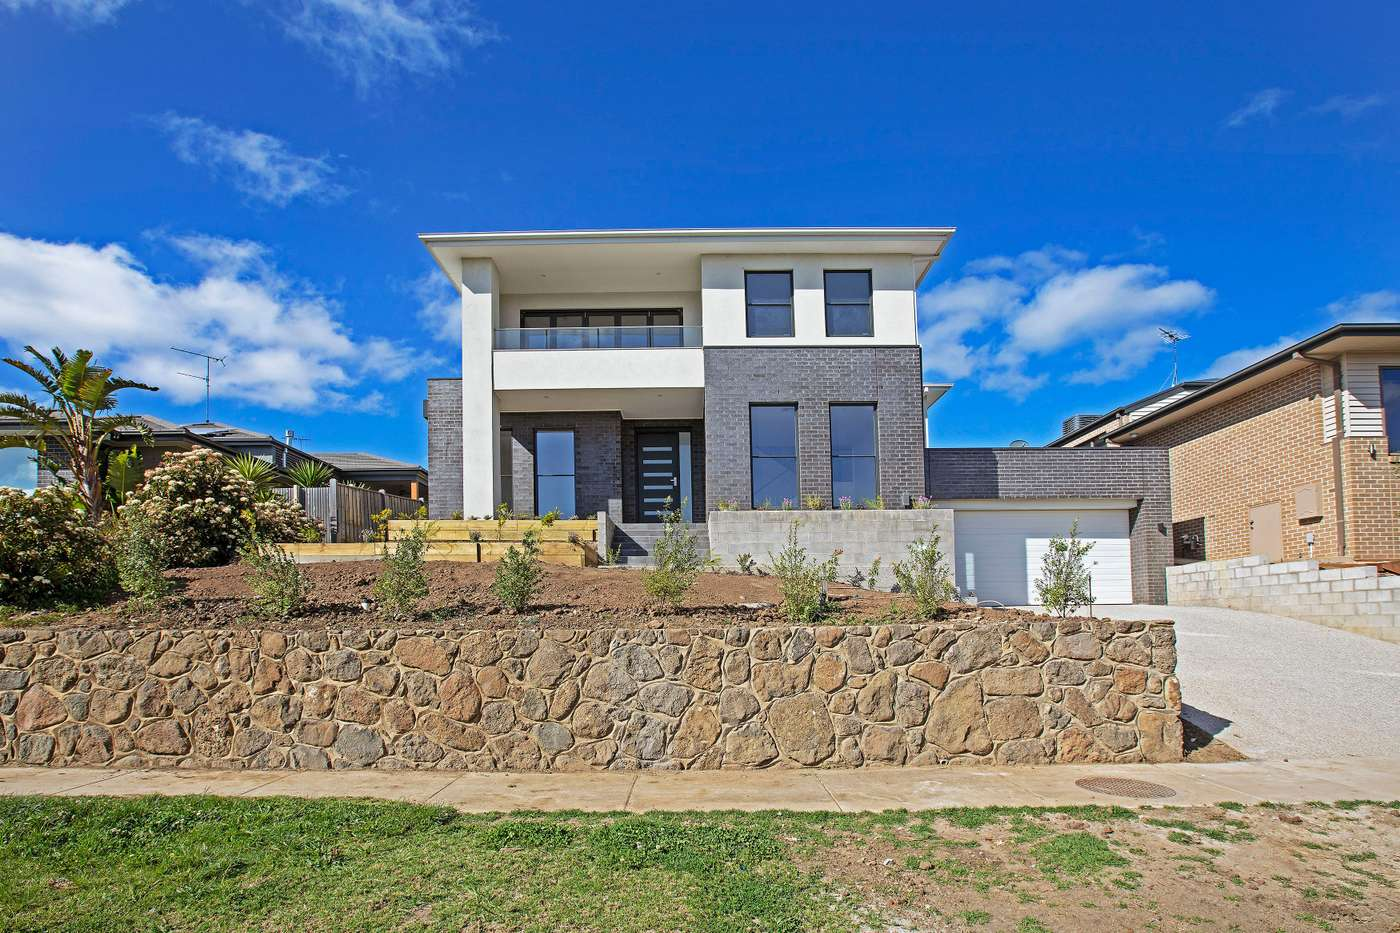 Main view of Homely house listing, 69 Province Boulevard, Highton, VIC 3216